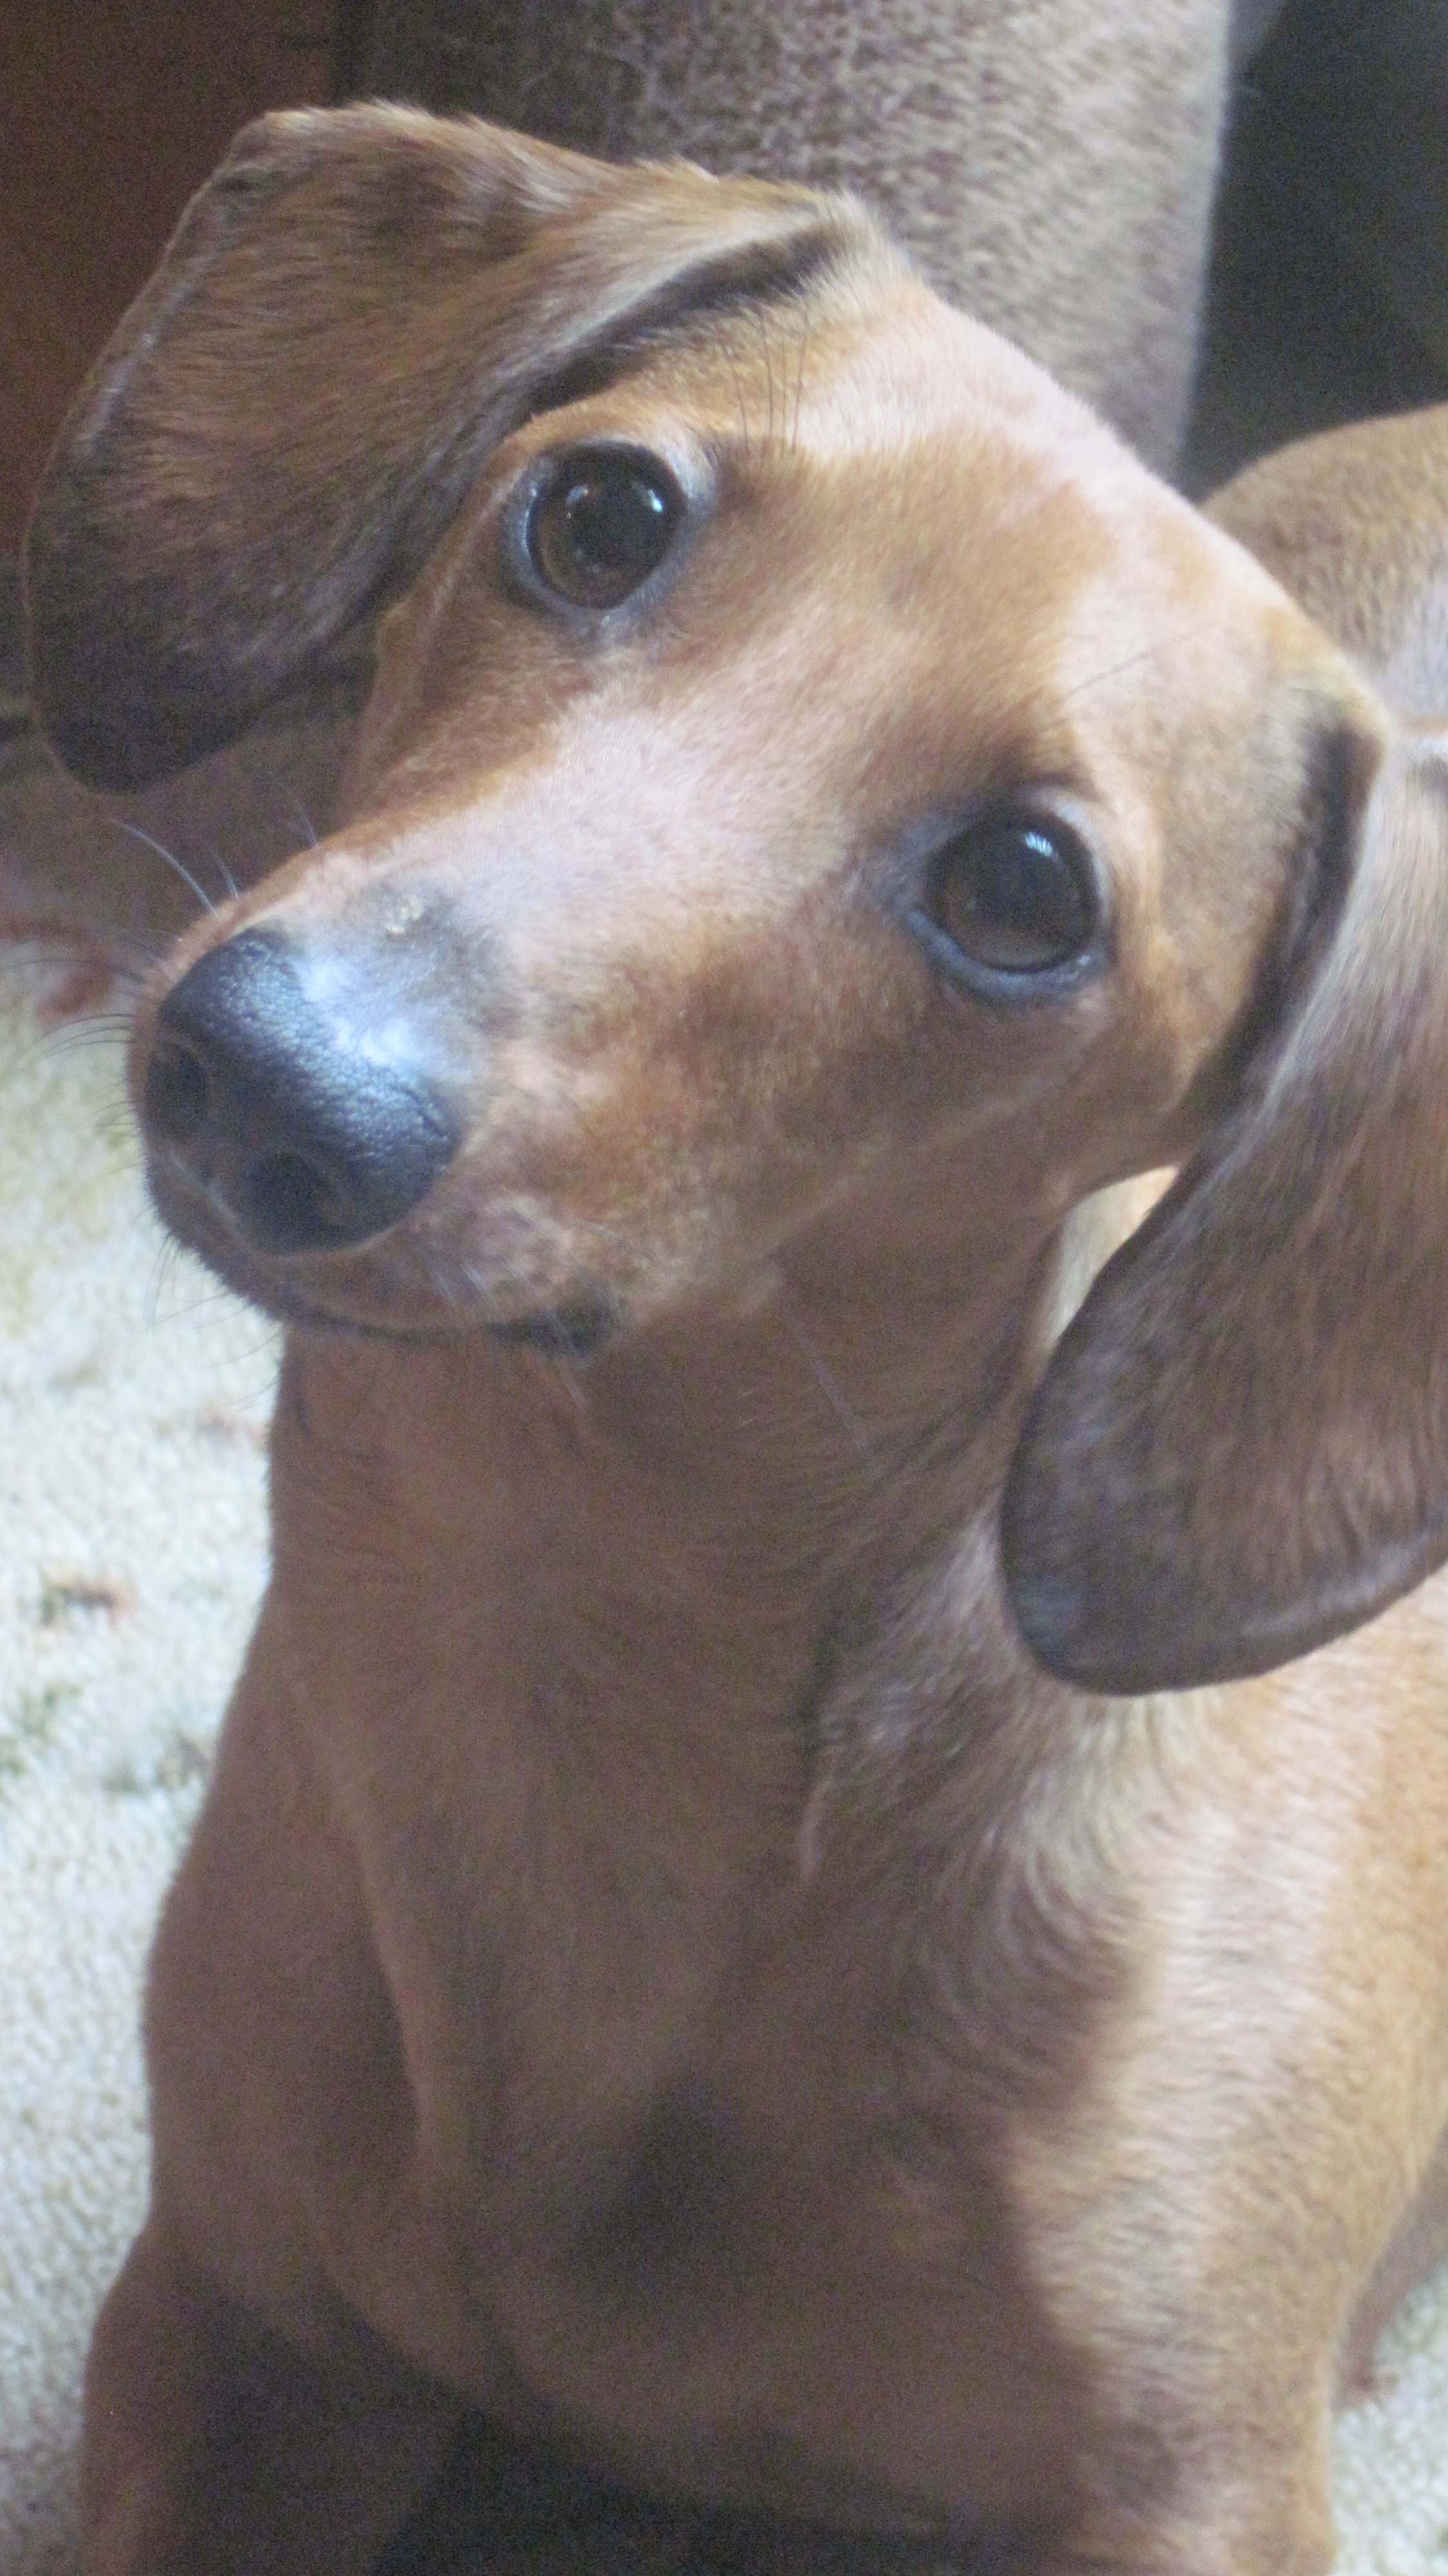 doxie tilting head close up